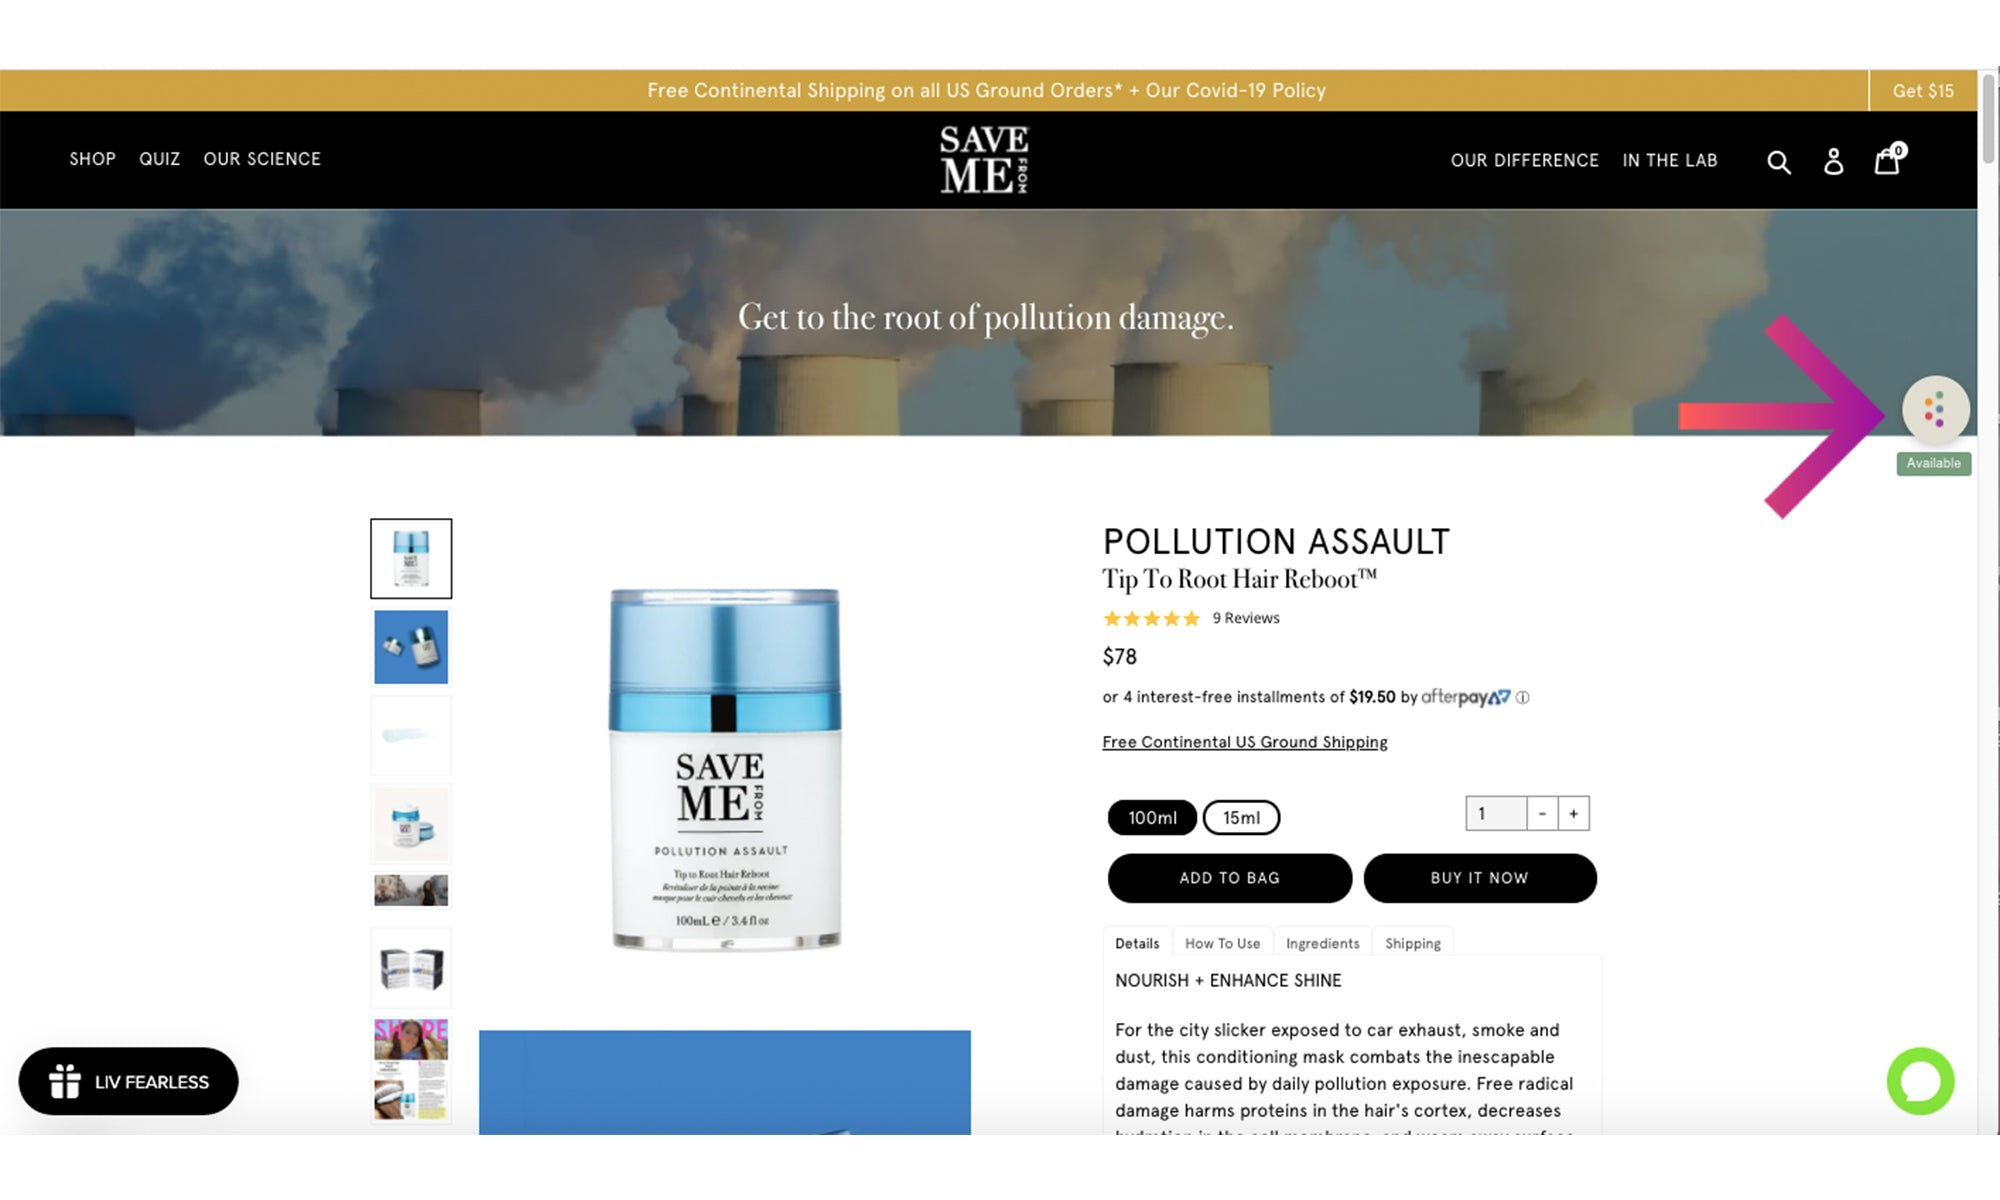 save me from pollution assault how to use carro for influencers how to get save me from free samples to get shinier hair and repair hair damage